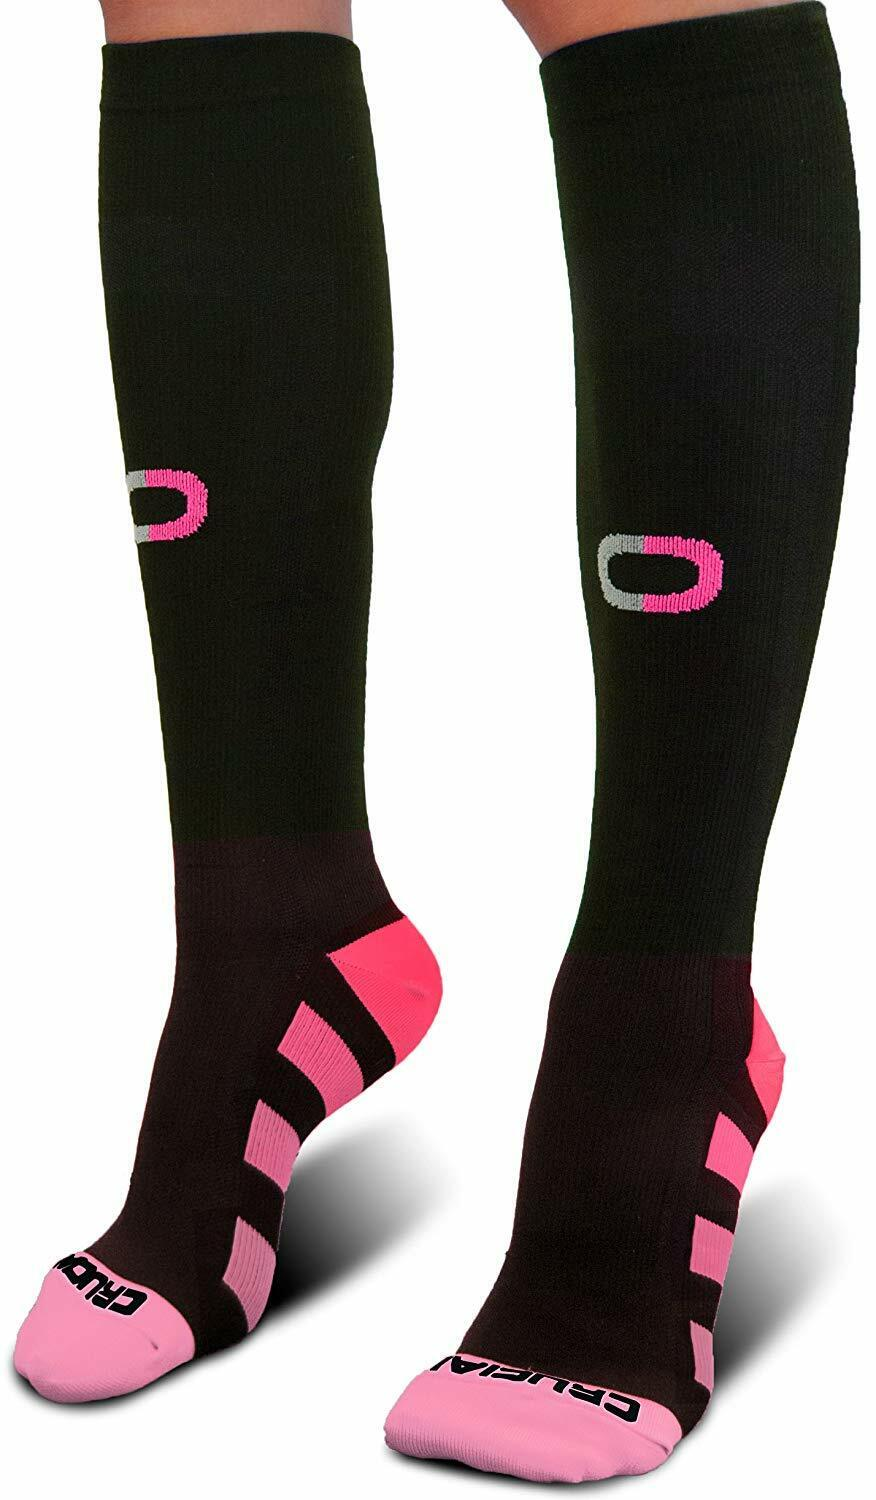 Crucial Compression Socks for Men & Women  - Best Graduated